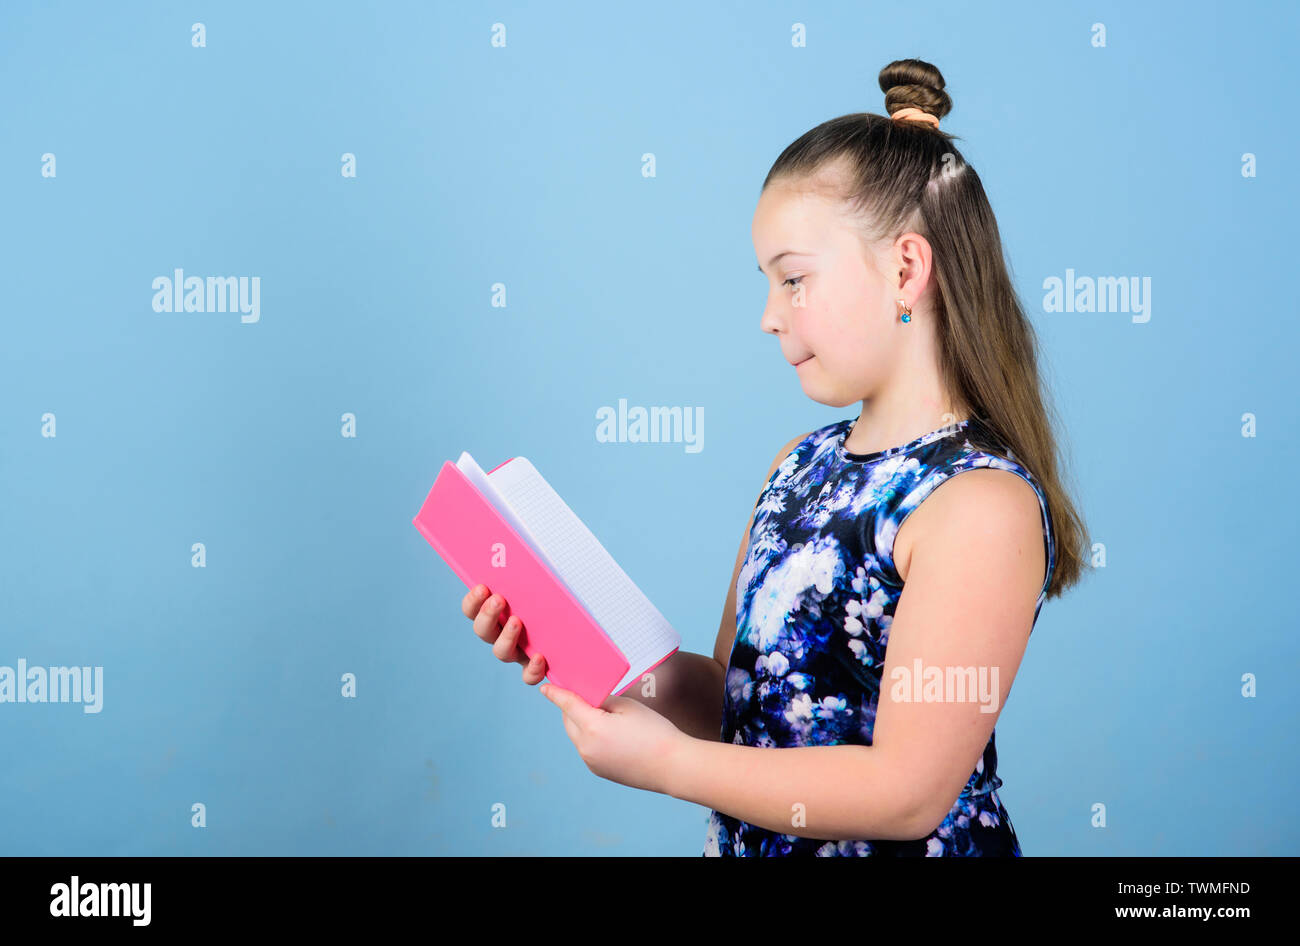 art director. workbooks for writing. school diaries for making notes. small girl with pink note book. school child with notepad. smart trendy kid read note folder. little business lady. small boss. - Stock Image